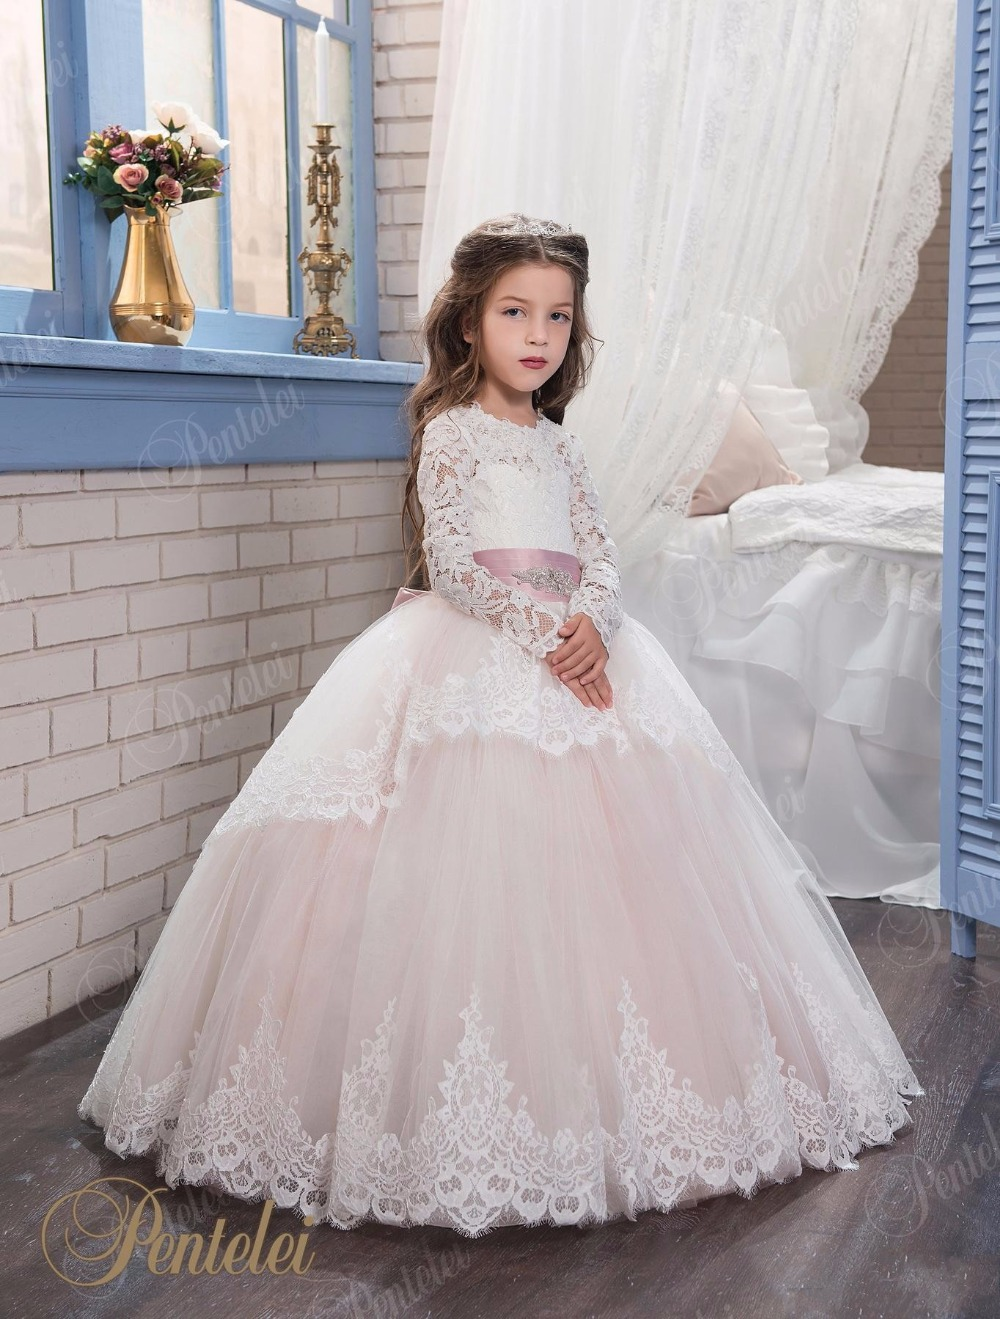 2017 Lace Flower Girl Dresses For Weddings Blush Pink Long